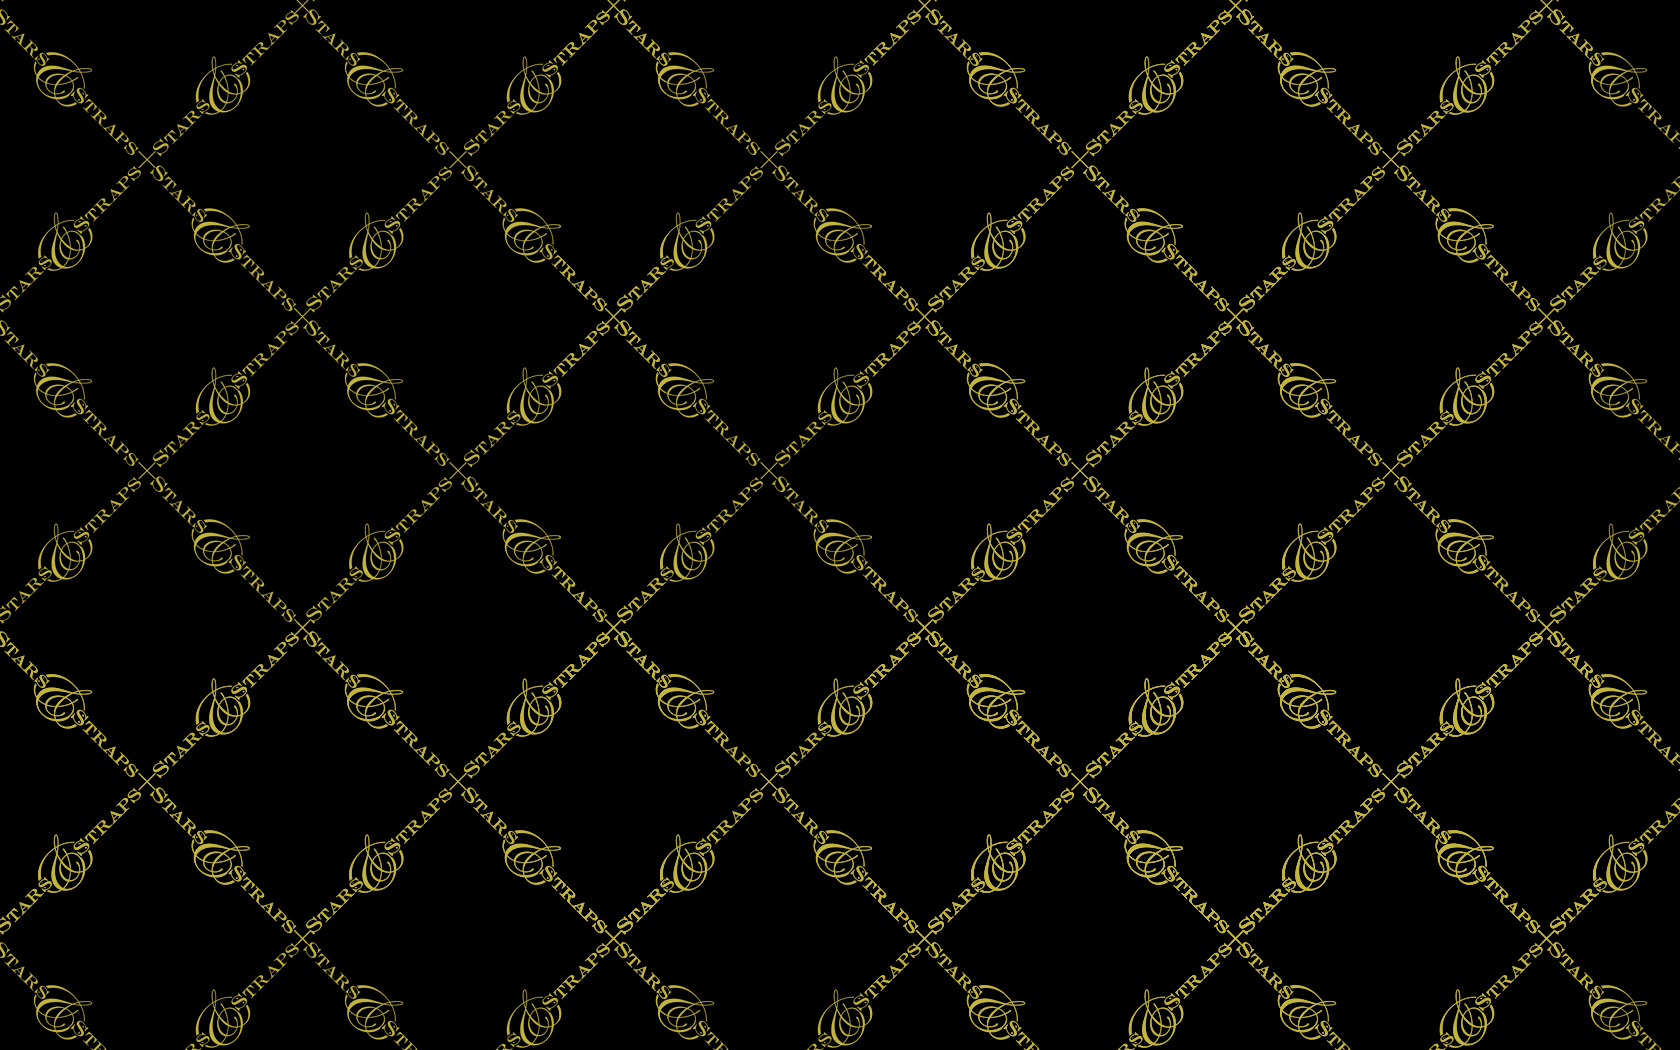 Black and Gold Wallpaper